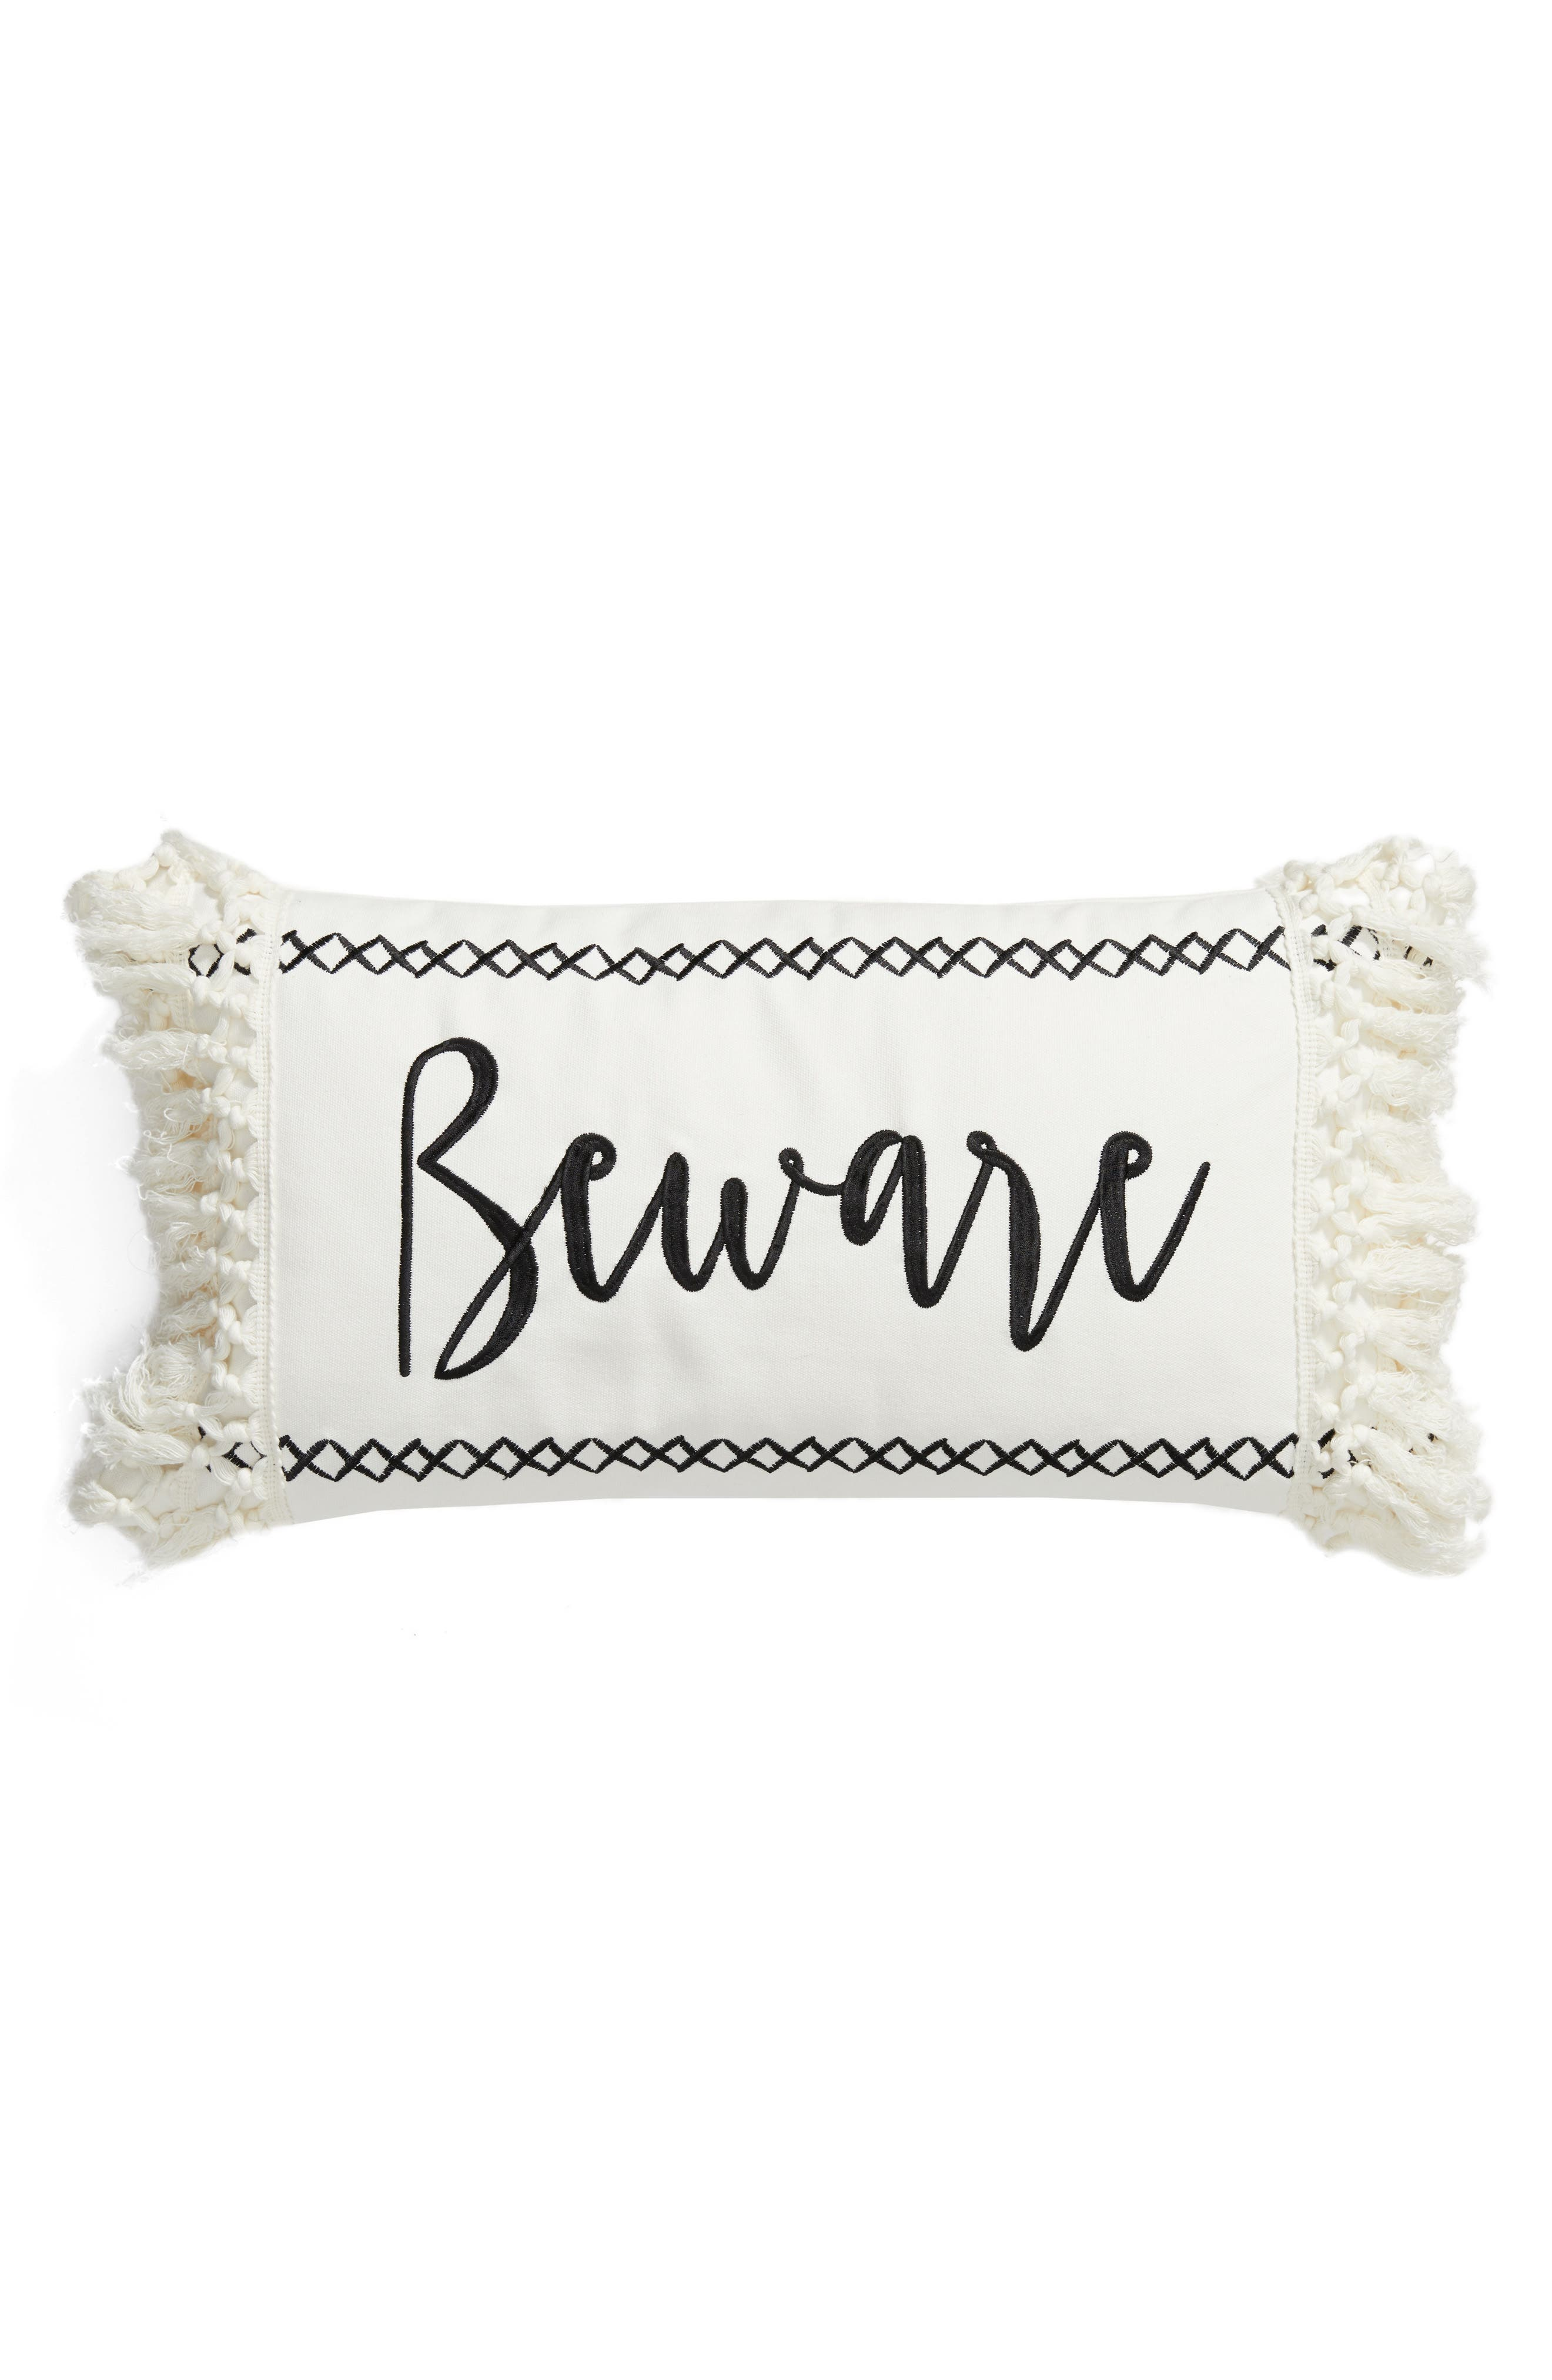 Alternate Image 1 Selected - Levtex Beware Accent Pillow